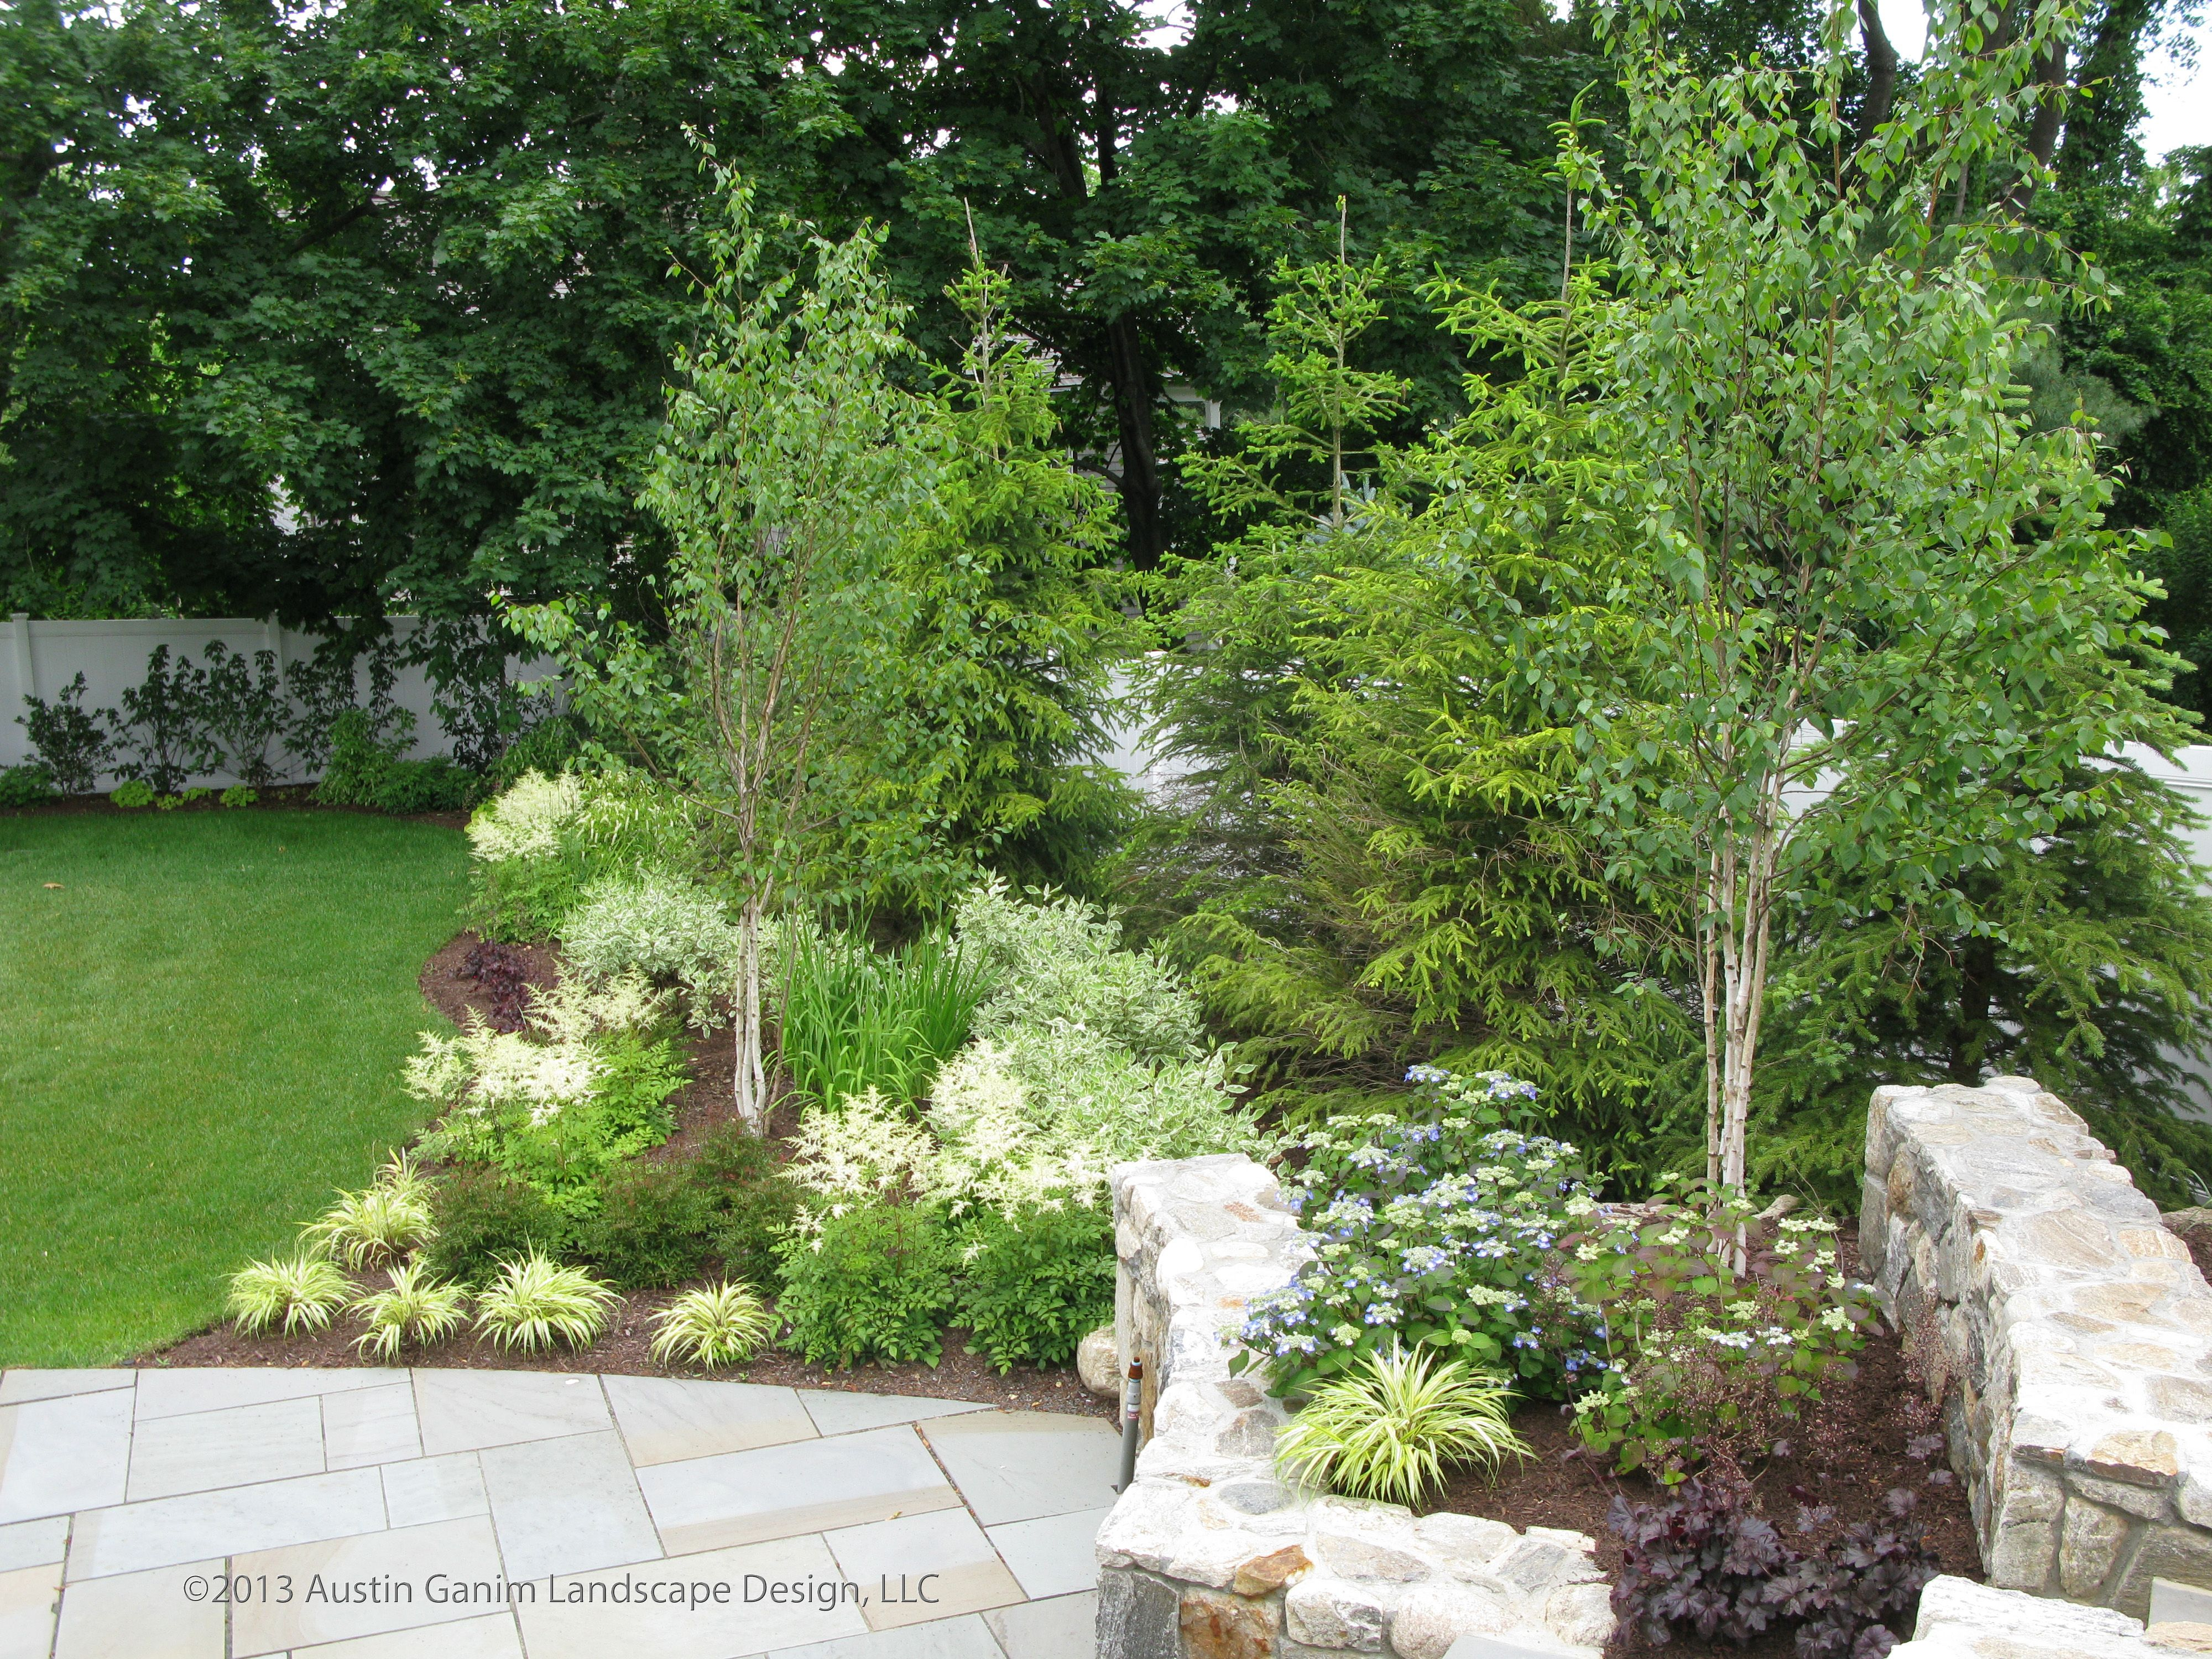 Pin By Austin Ganim Landscape Design On Beach Area Garden With A Touch Of Woodland Elements Garden Shrubs Cottage Front Garden Landscape Design